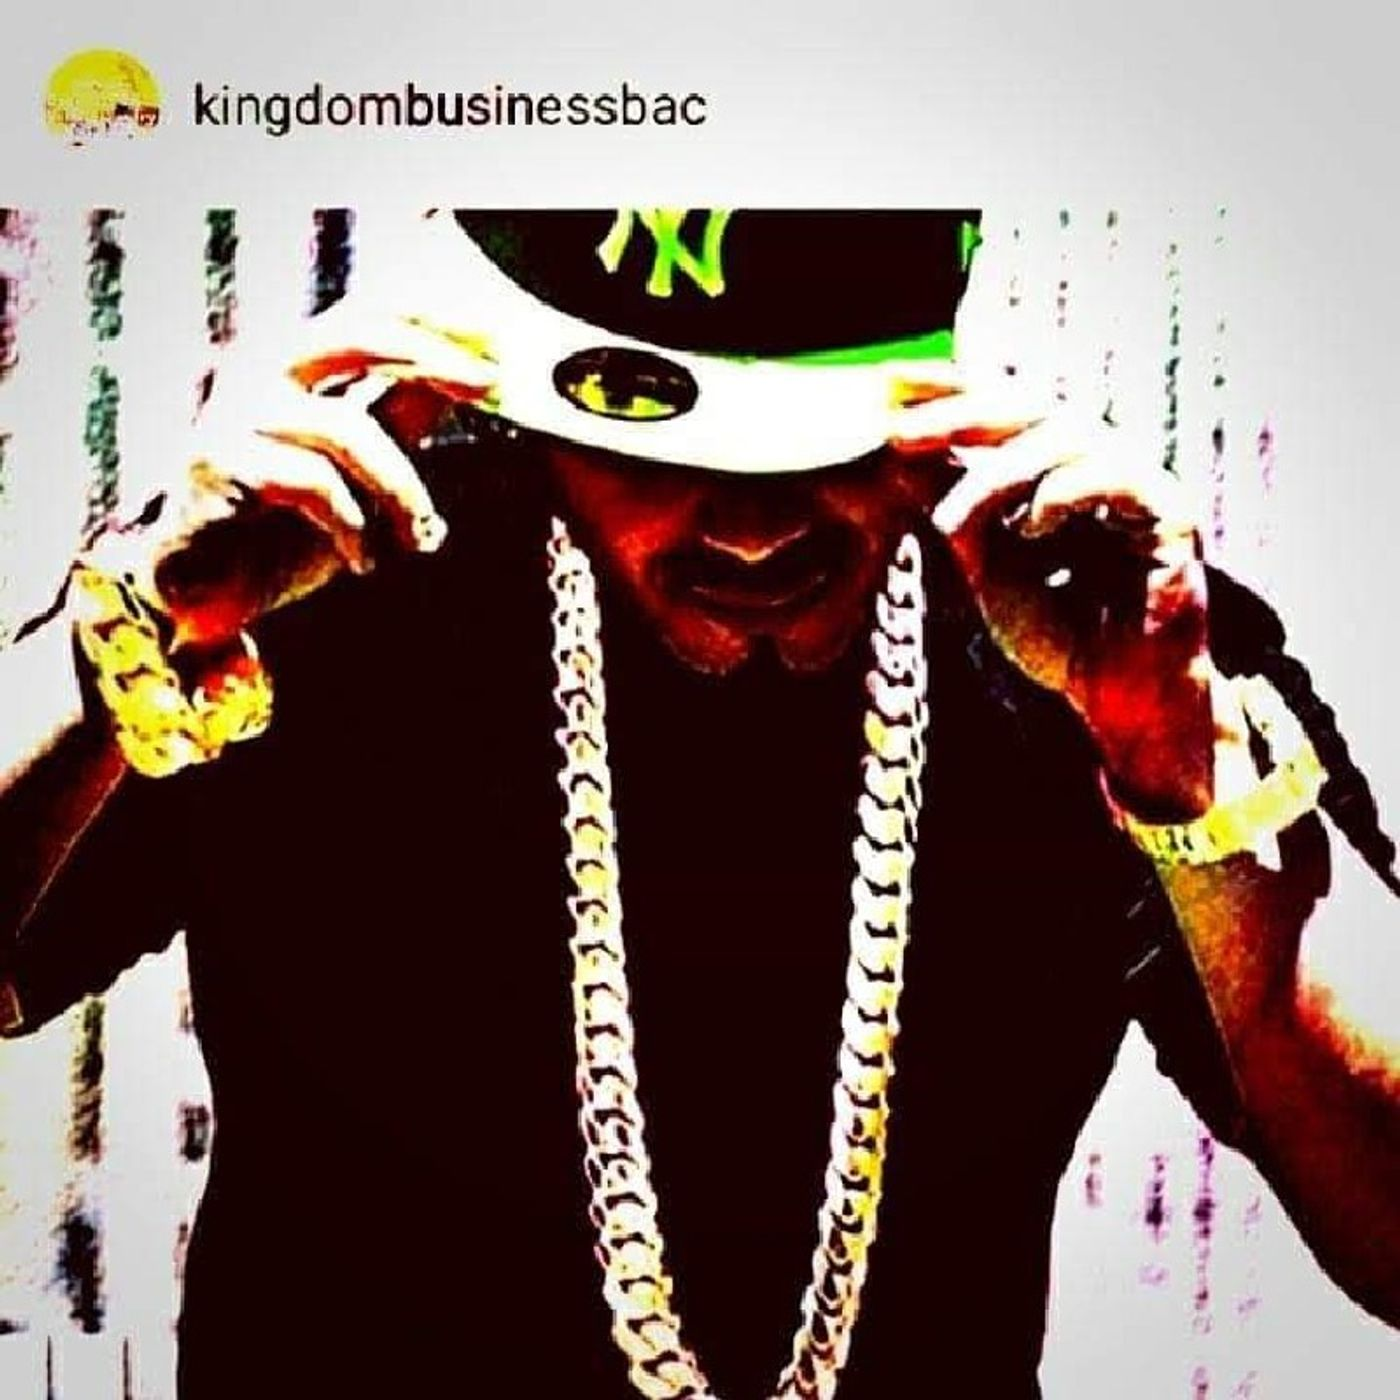 Episode 124 - KINGDOM BUSINESS Bac Ministry's show